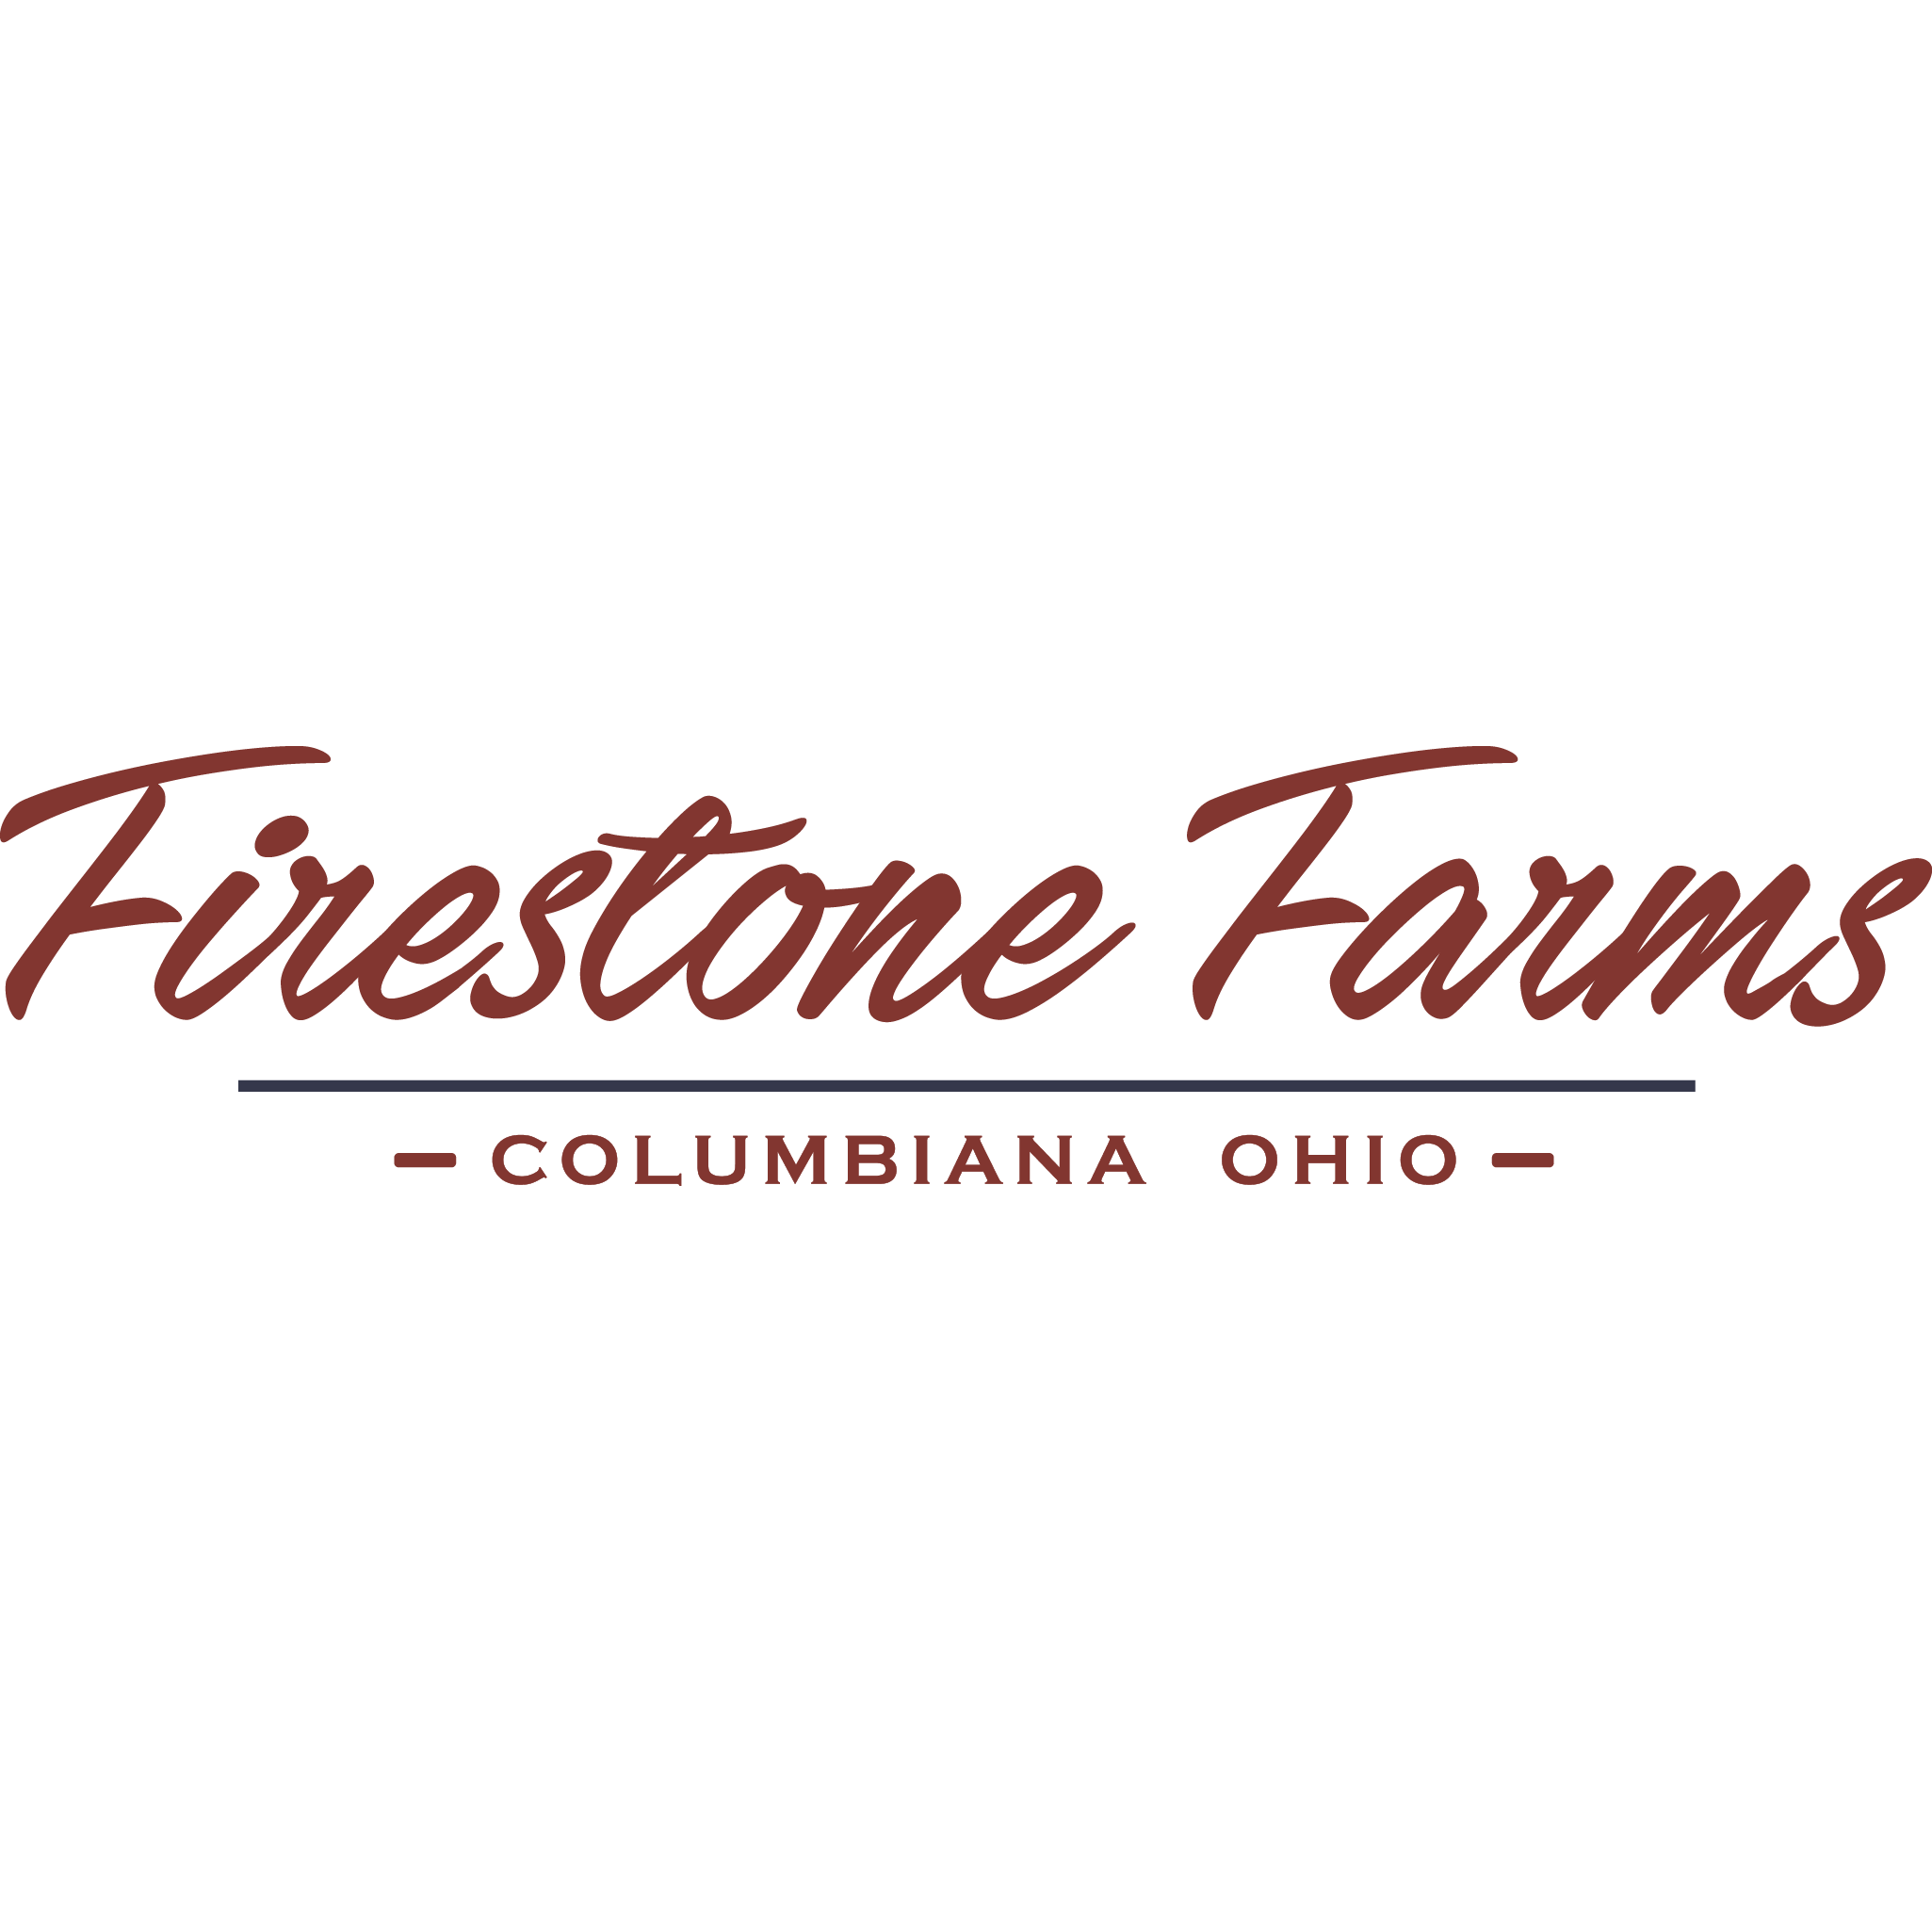 Firestone Farms